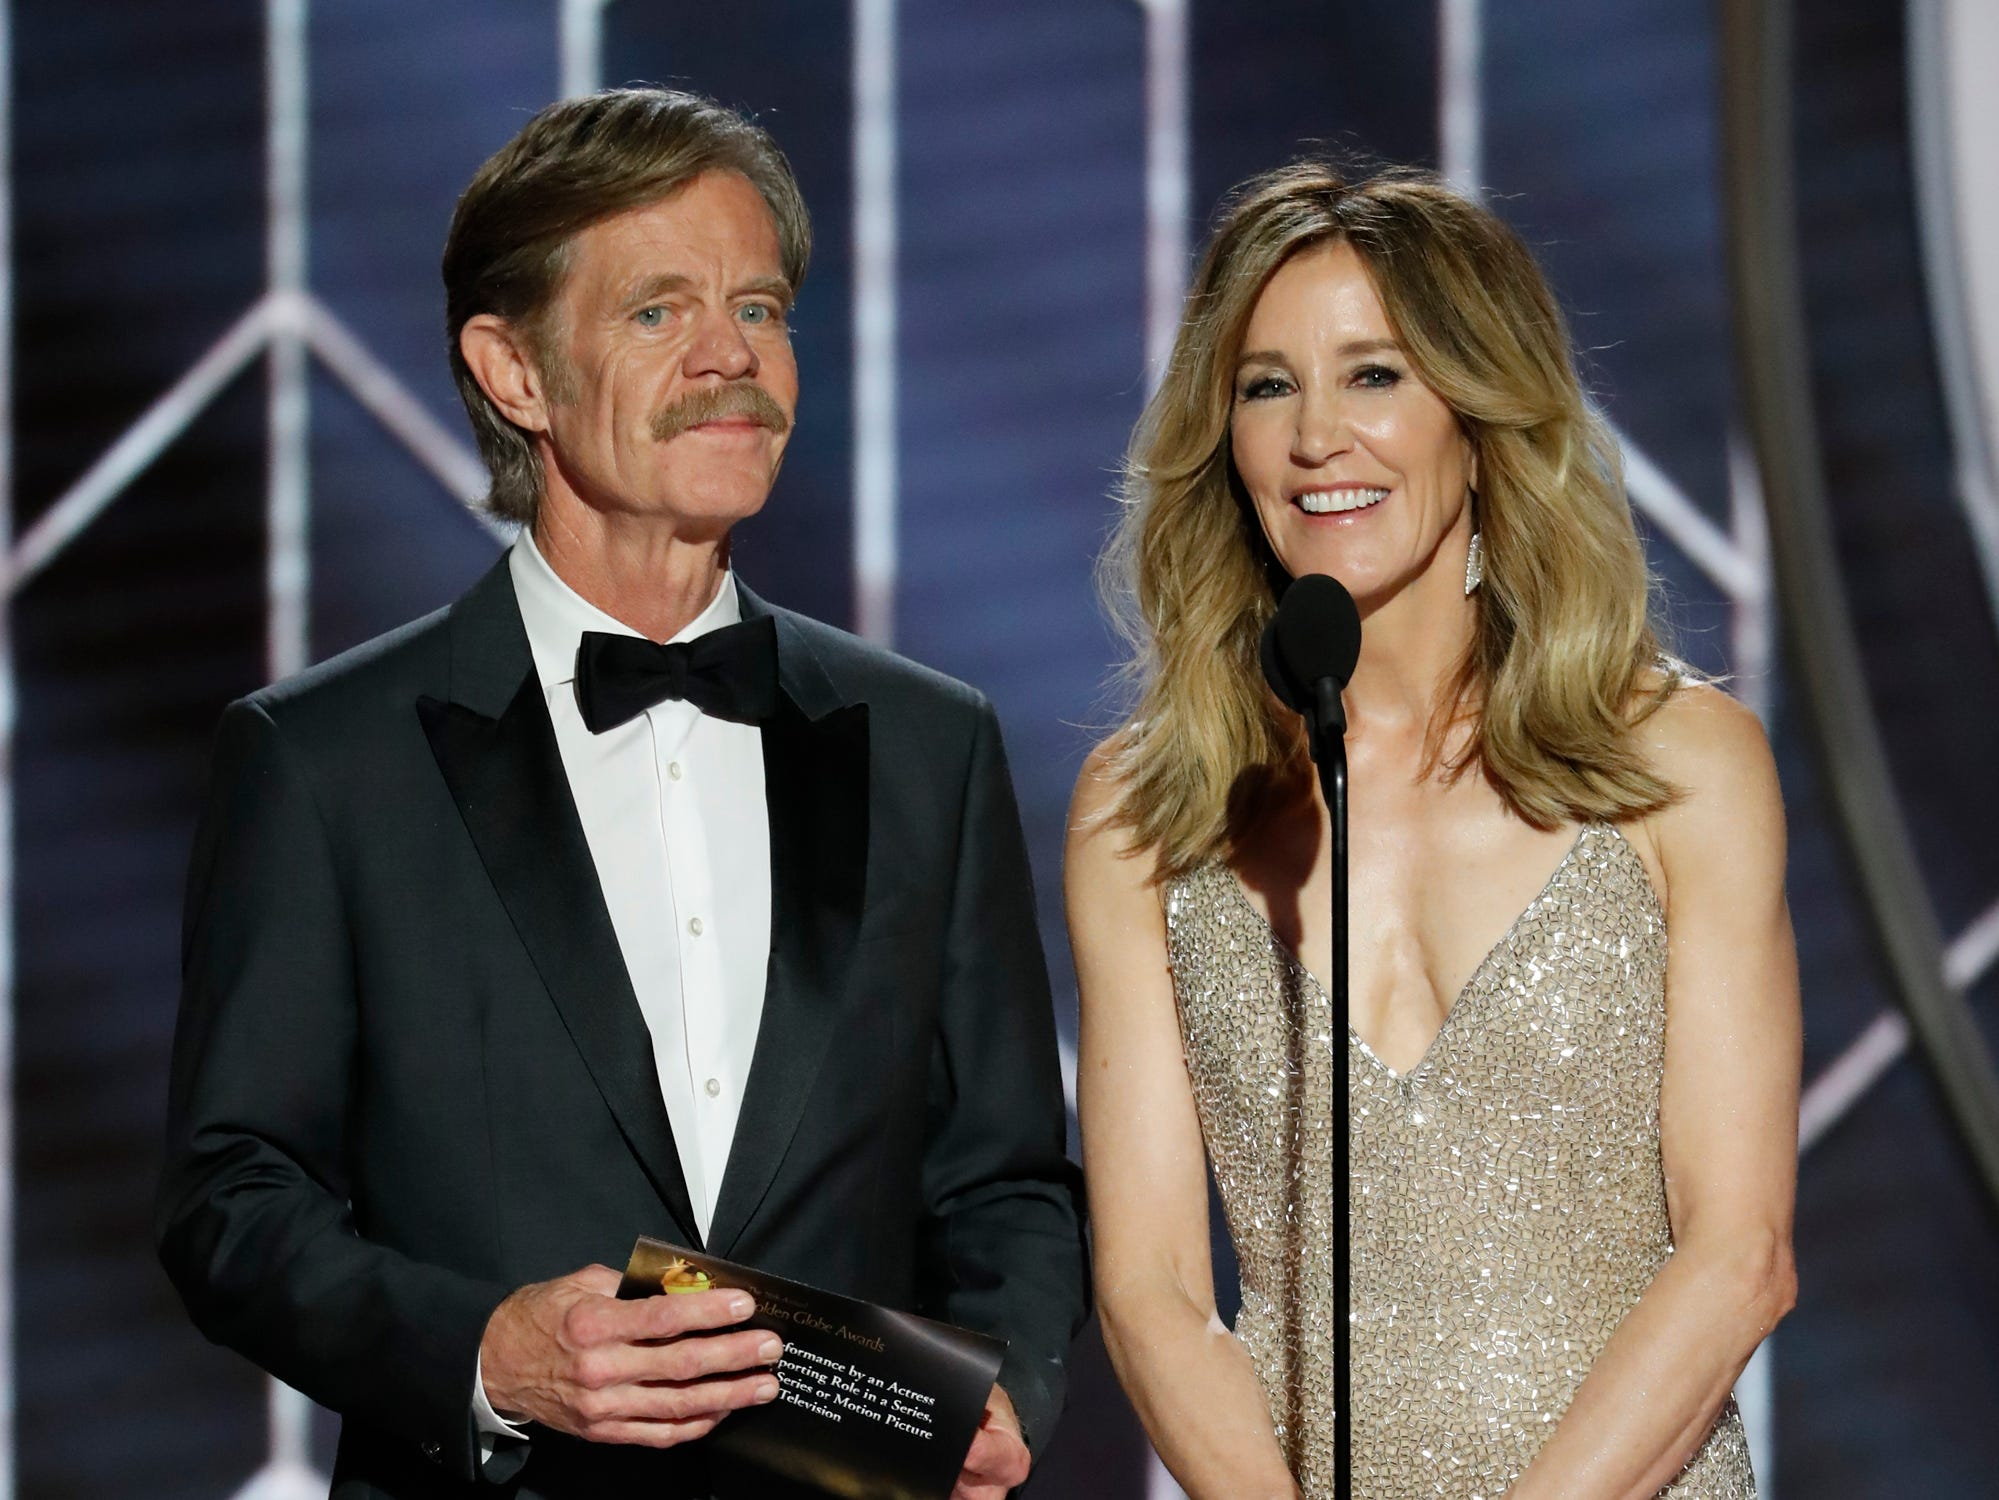 This image released by NBC shows presenters William H. Macy, left, and Felicity Huffman during the 76th Annual Golden Globe Awards at the Beverly Hilton Hotel.